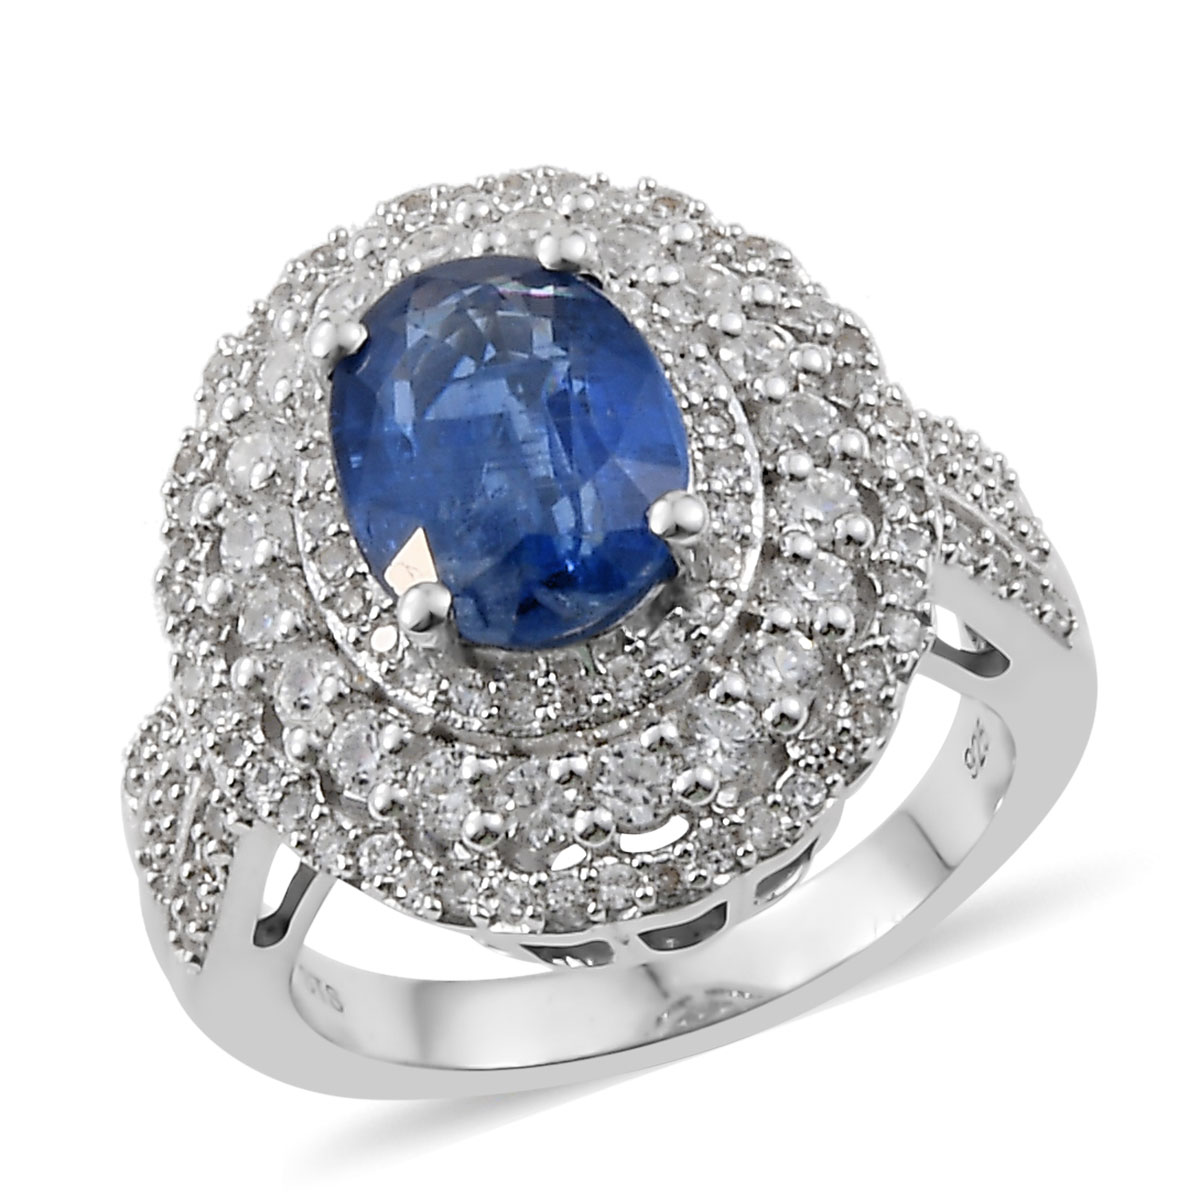 925 Silver Platinum Plated Petalite Cambodian Zircon Engagement Cluster Ring